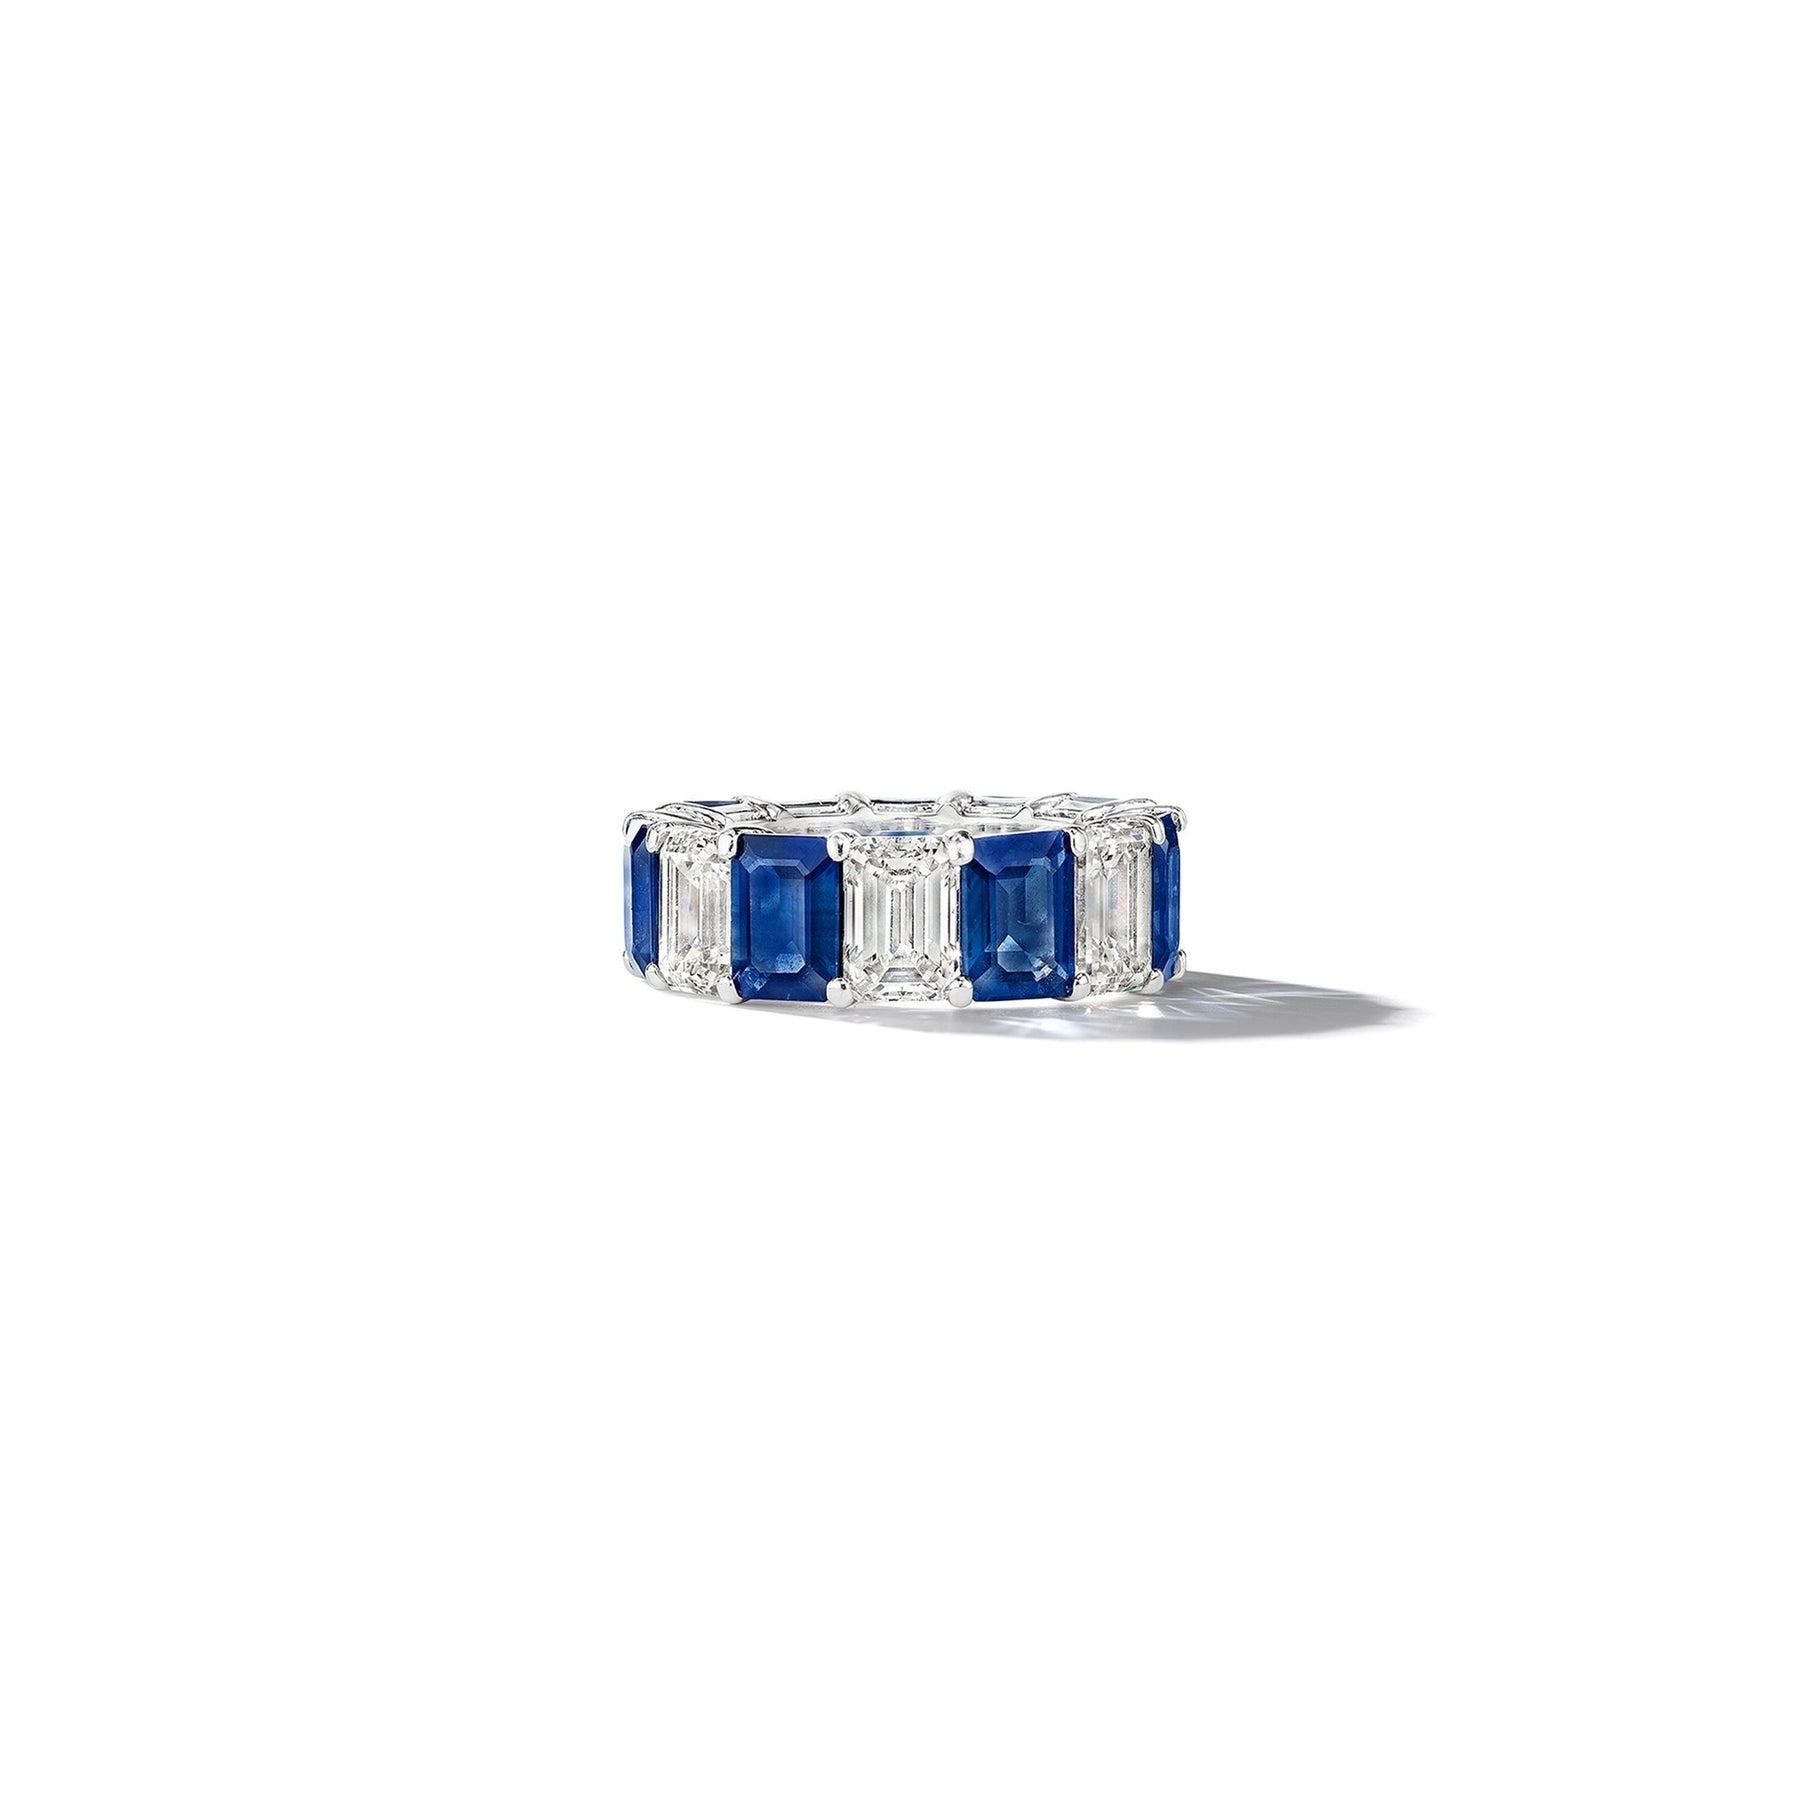 Mimi-So-Bridal-Emerald-Cut-Sapphire-Diamond-Eternity-Ring_Platinum